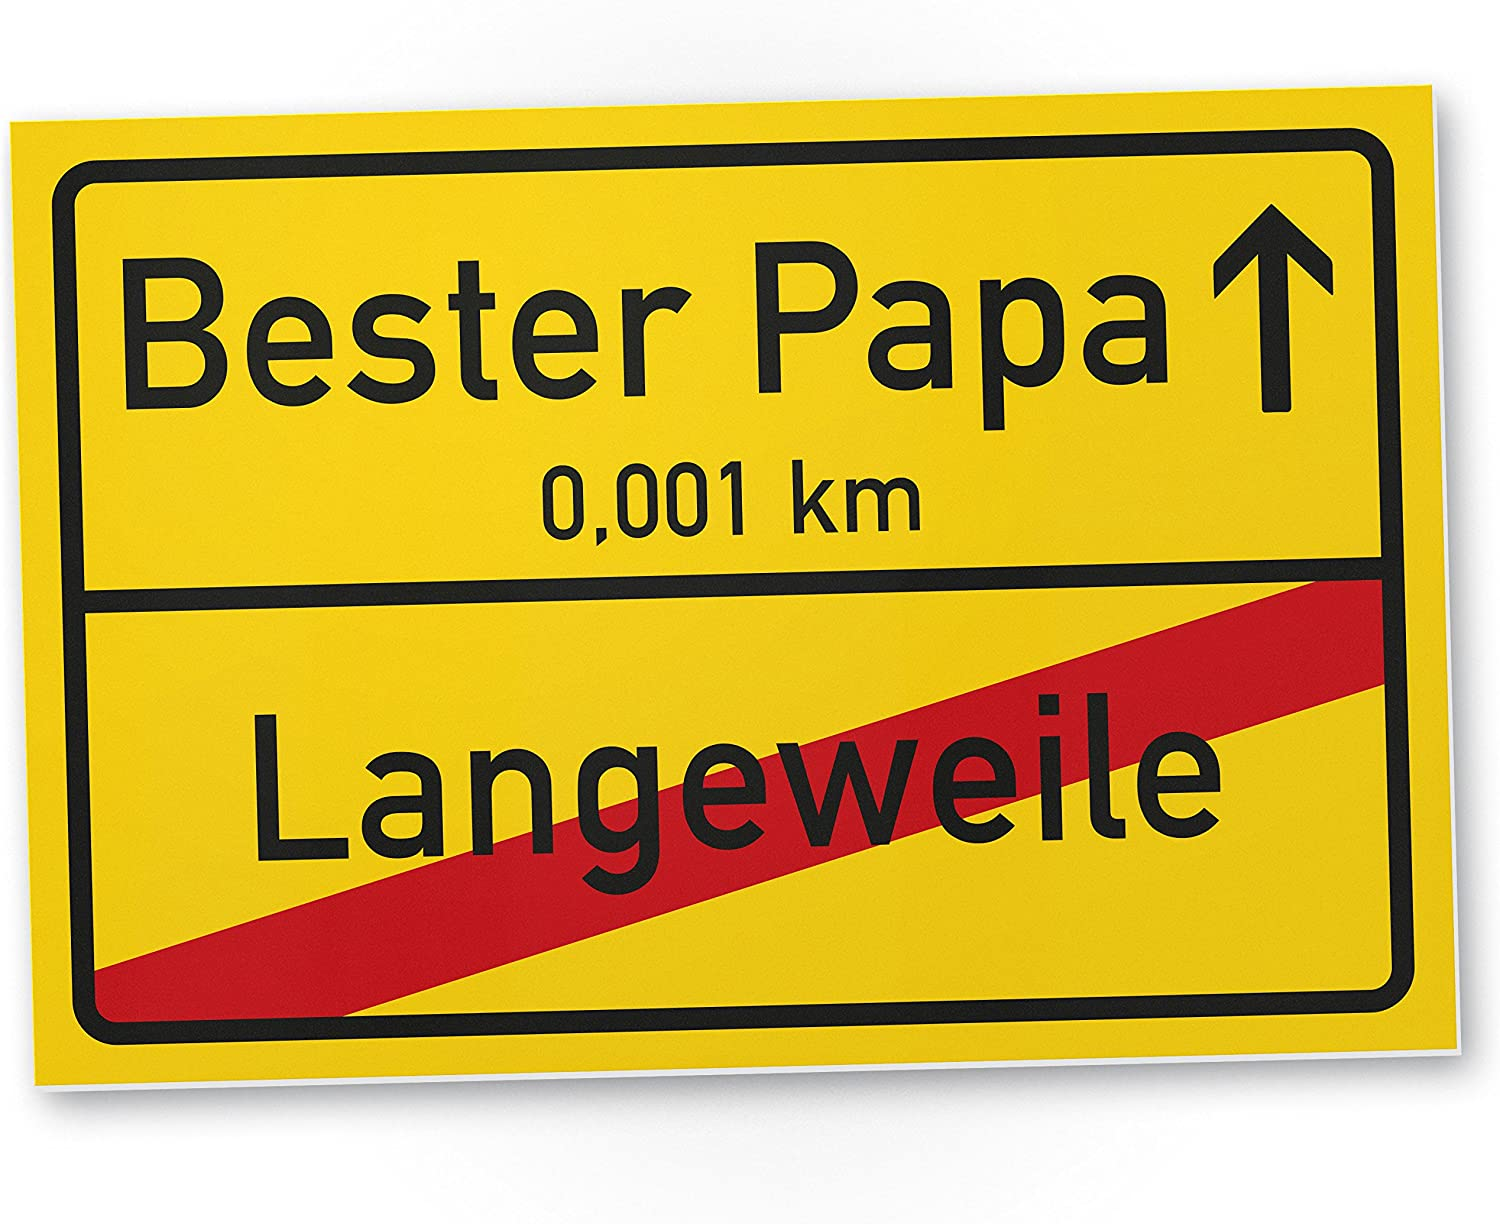 Thank You Bester Papa Place Sign 30 X 20 Cm Plastic Door Sign Gift Idea Birthday Gift Dad Dad Wall Decoration For The Office Office Room Bedroom Home Decoration Amazon Co Uk Kitchen Home